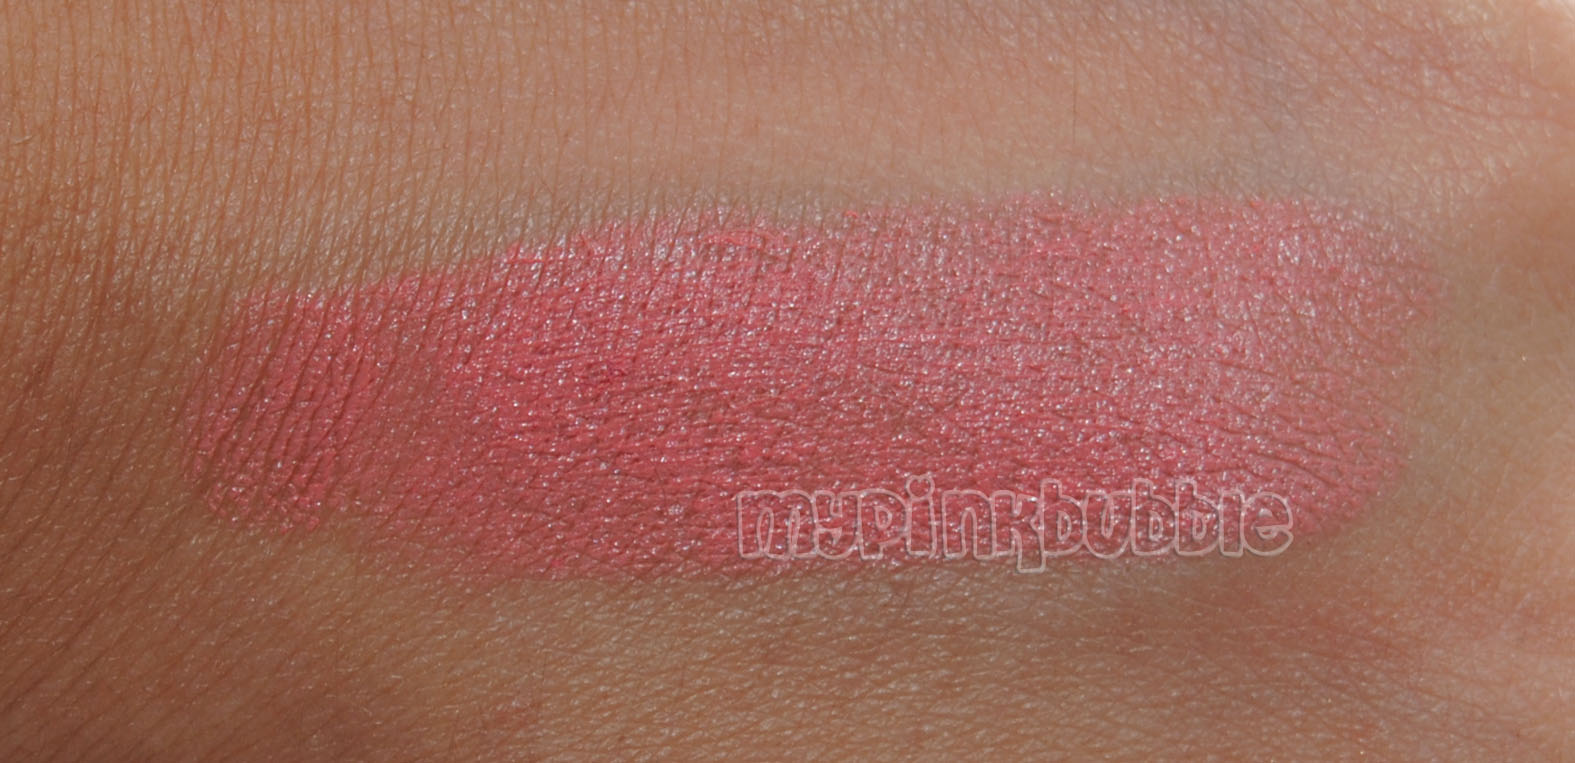 Labial Wet n Wild Just Peachy swatch